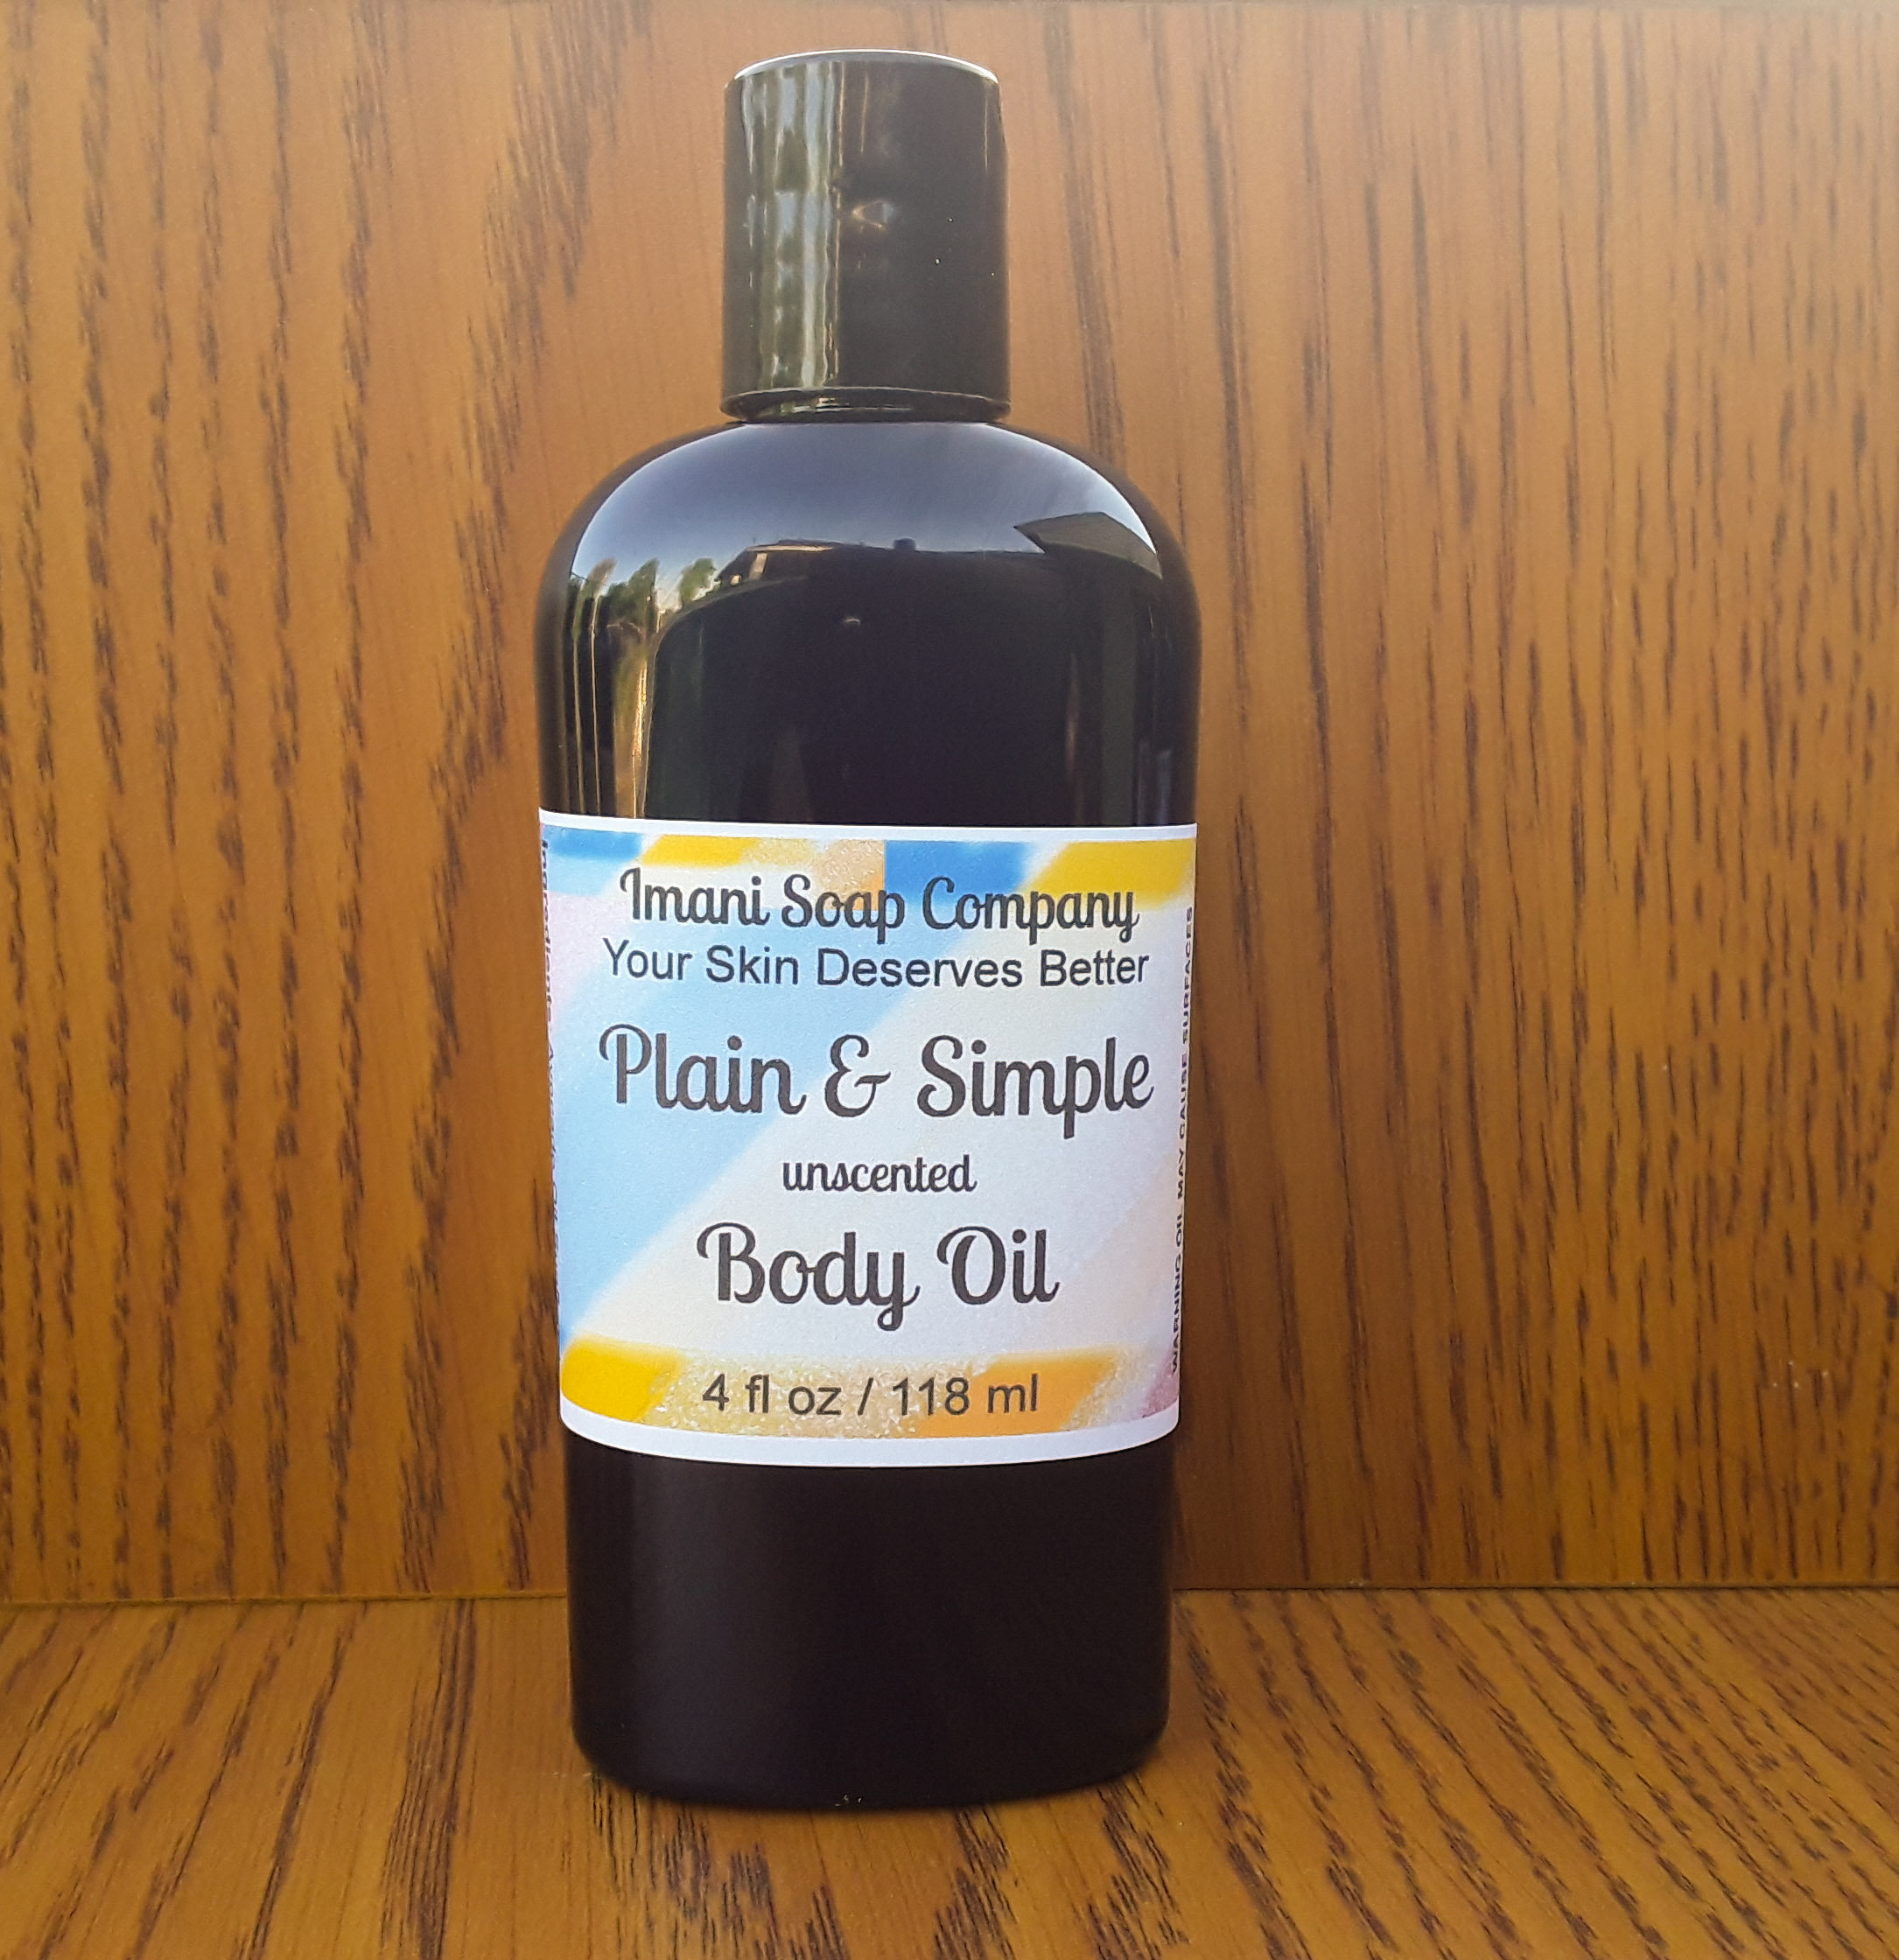 Plain and Simple Body Oil